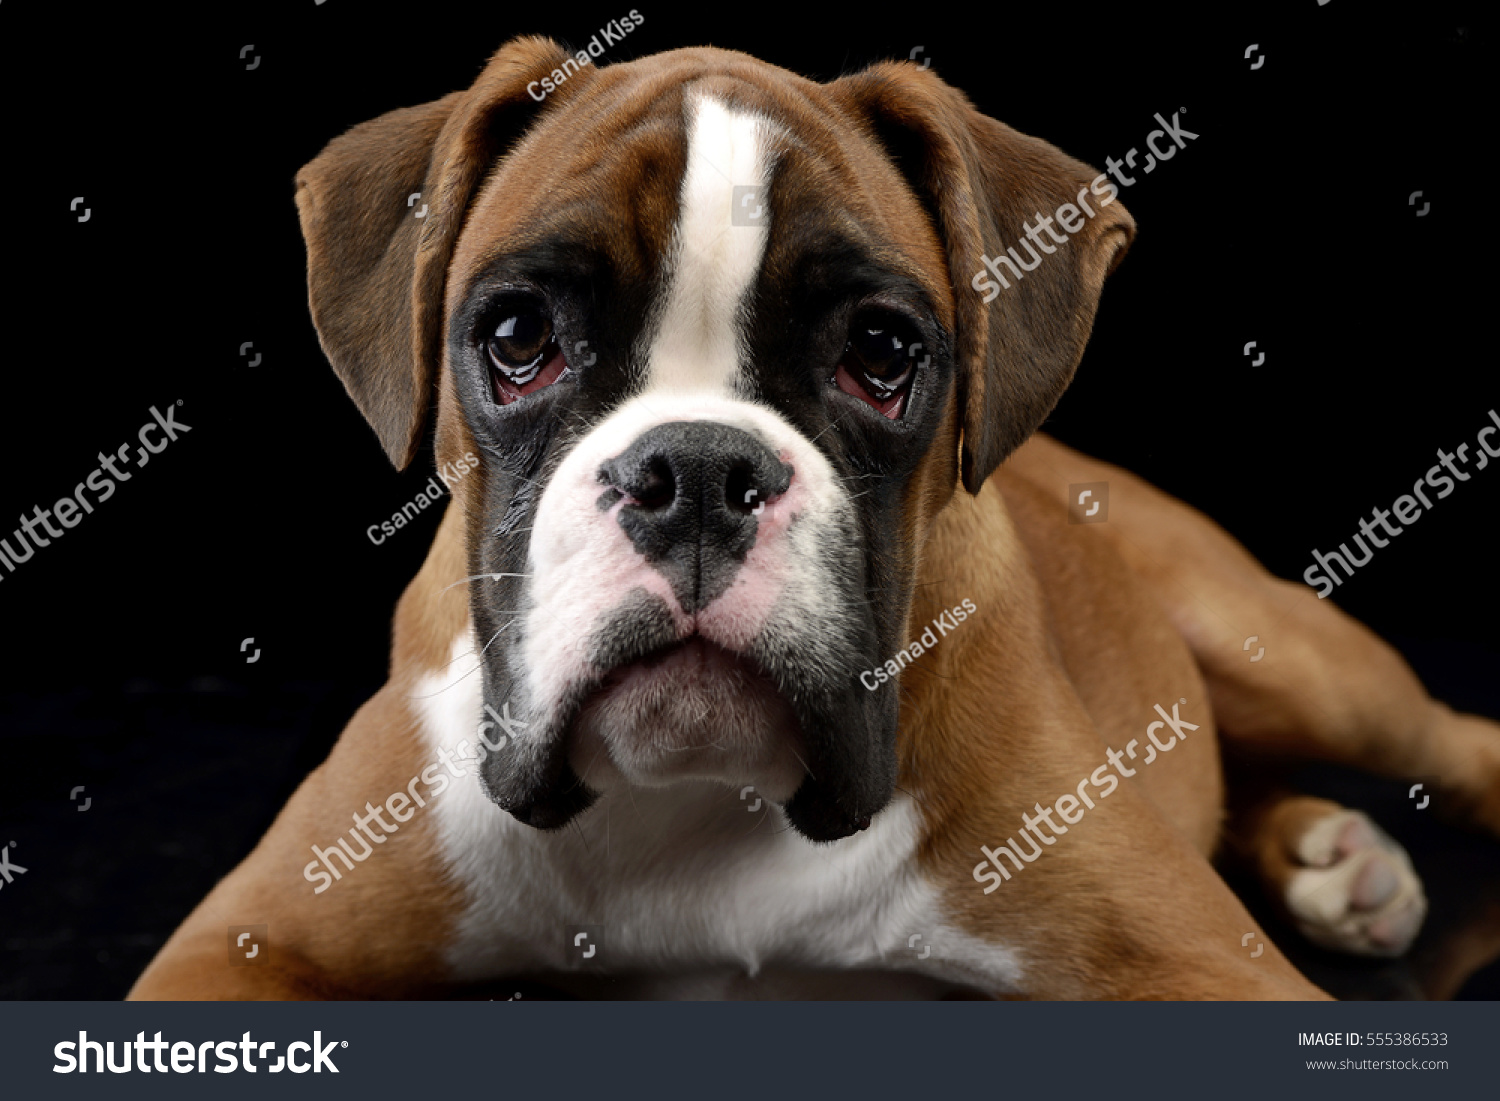 Top Boxer Black Adorable Dog - stock-photo-portrait-of-an-adorable-boxer-dog-studio-shot-isolated-on-black-555386533  2018_646059  .jpg